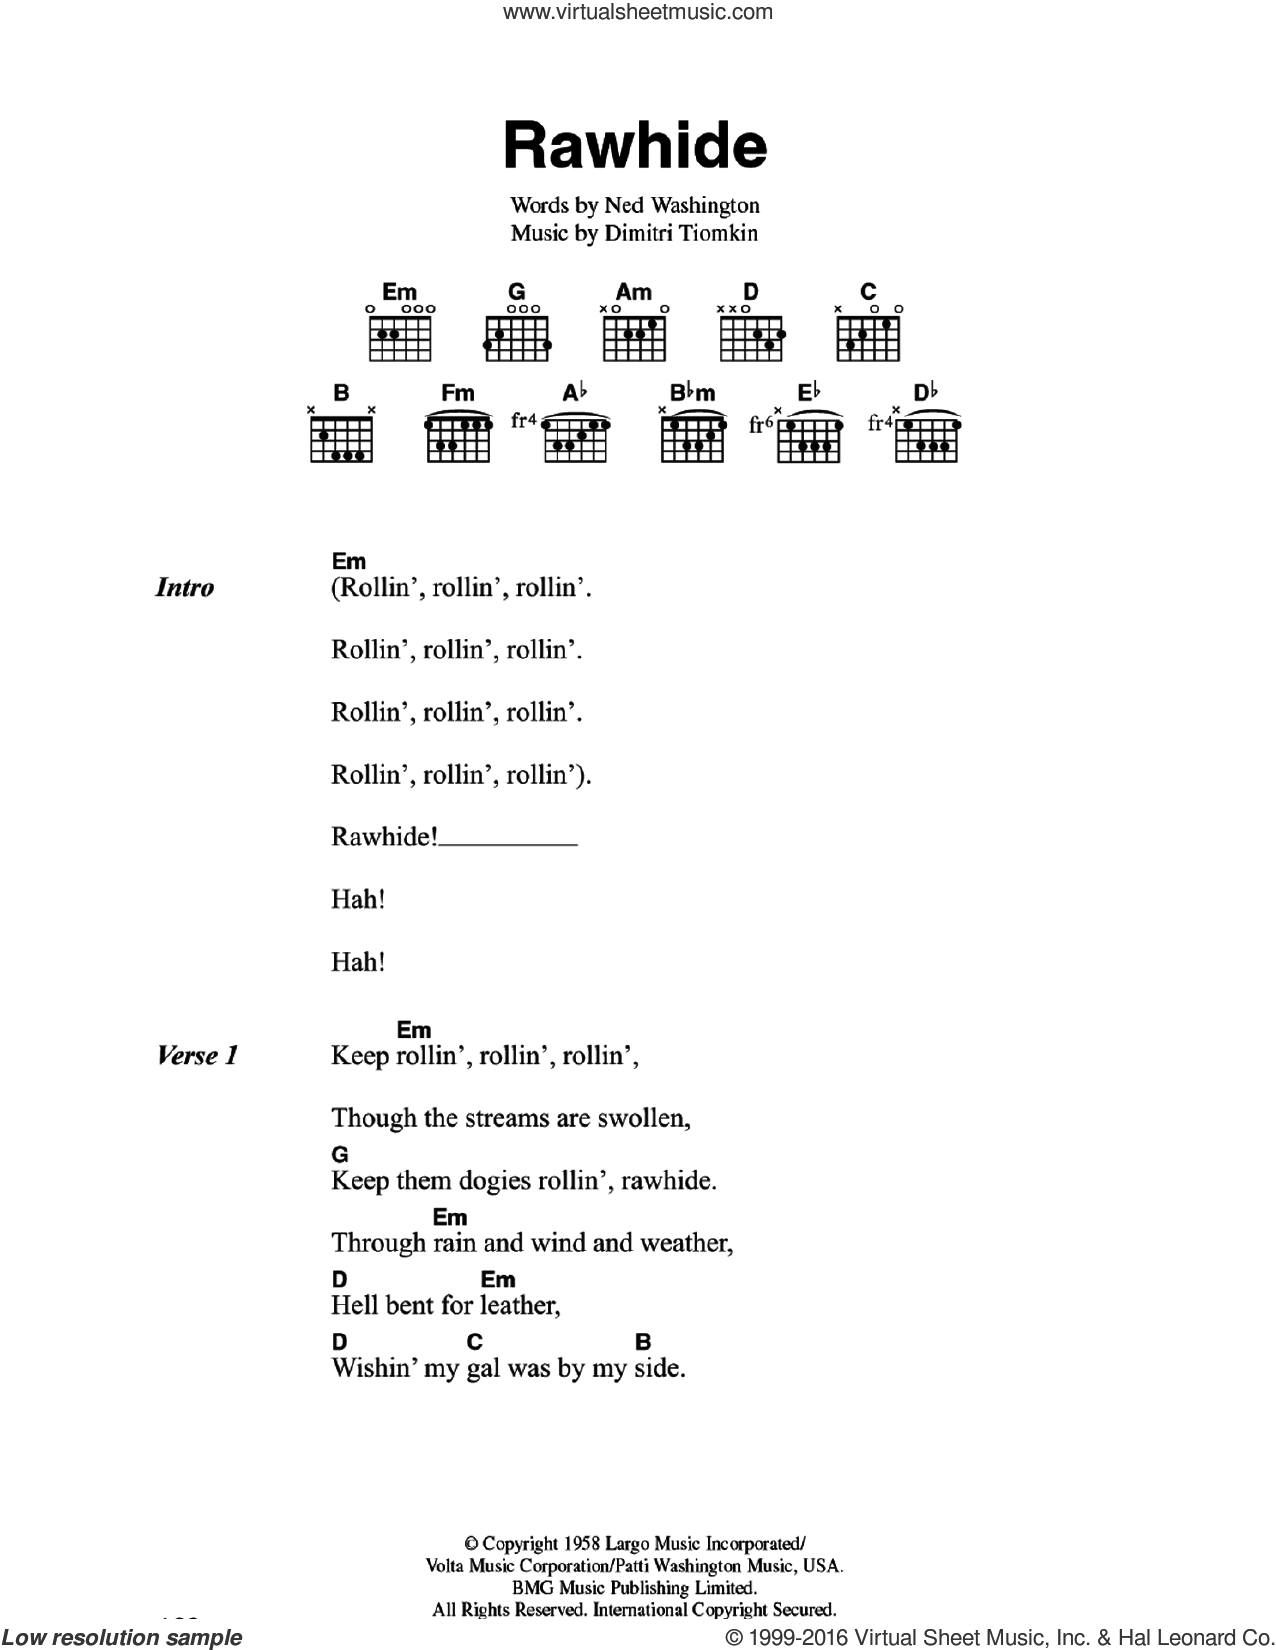 The Blues Brothers - Rawhide sheet music for guitar (chords)